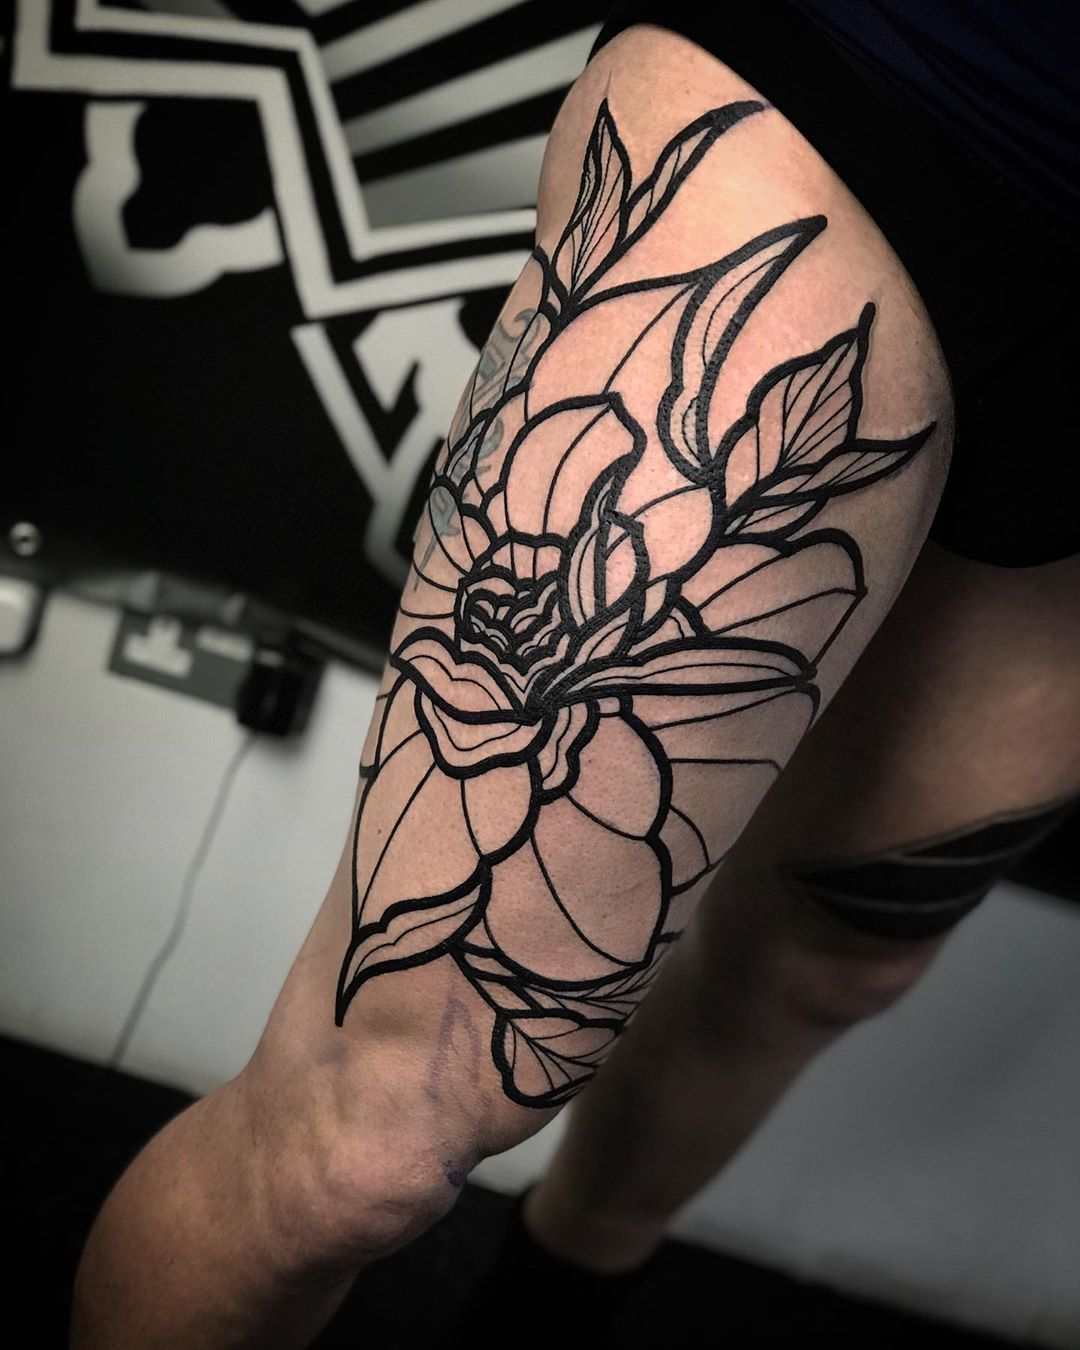 Pretty Image of Peony Tattoo design